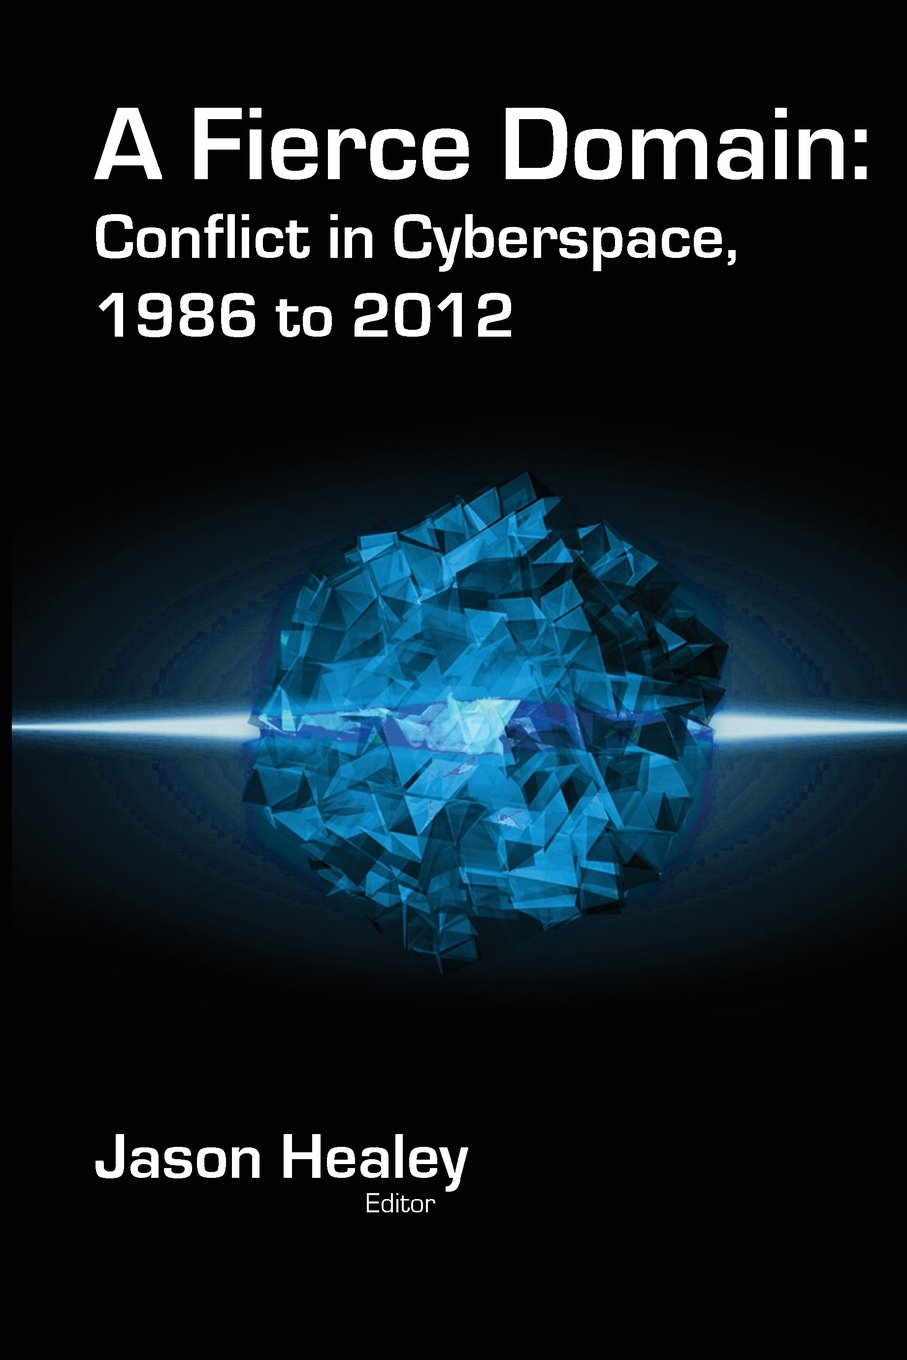 Download A Fierce Domain: Conflict in Cyberspace, 1986 to 2012 pdf